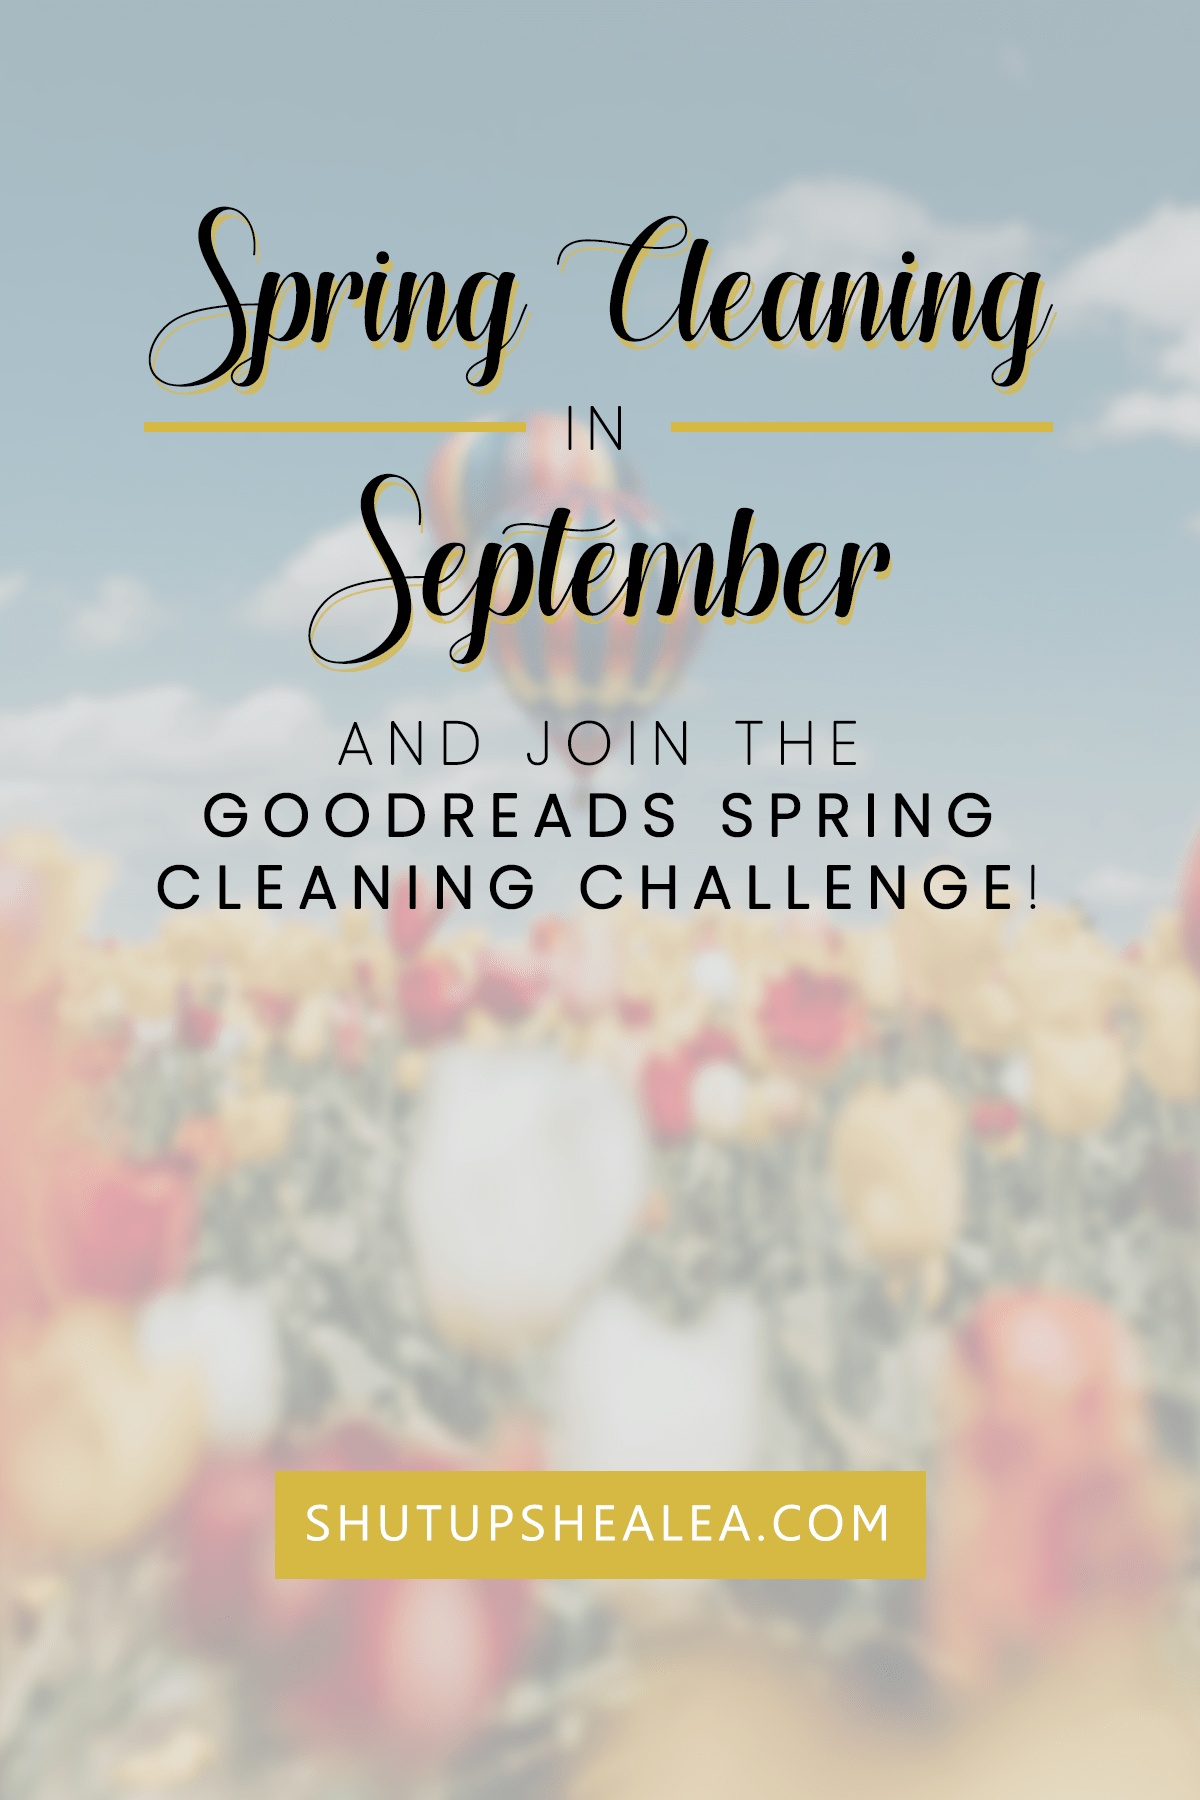 Spring Cleaning in September (ft. #goodreadance2020)